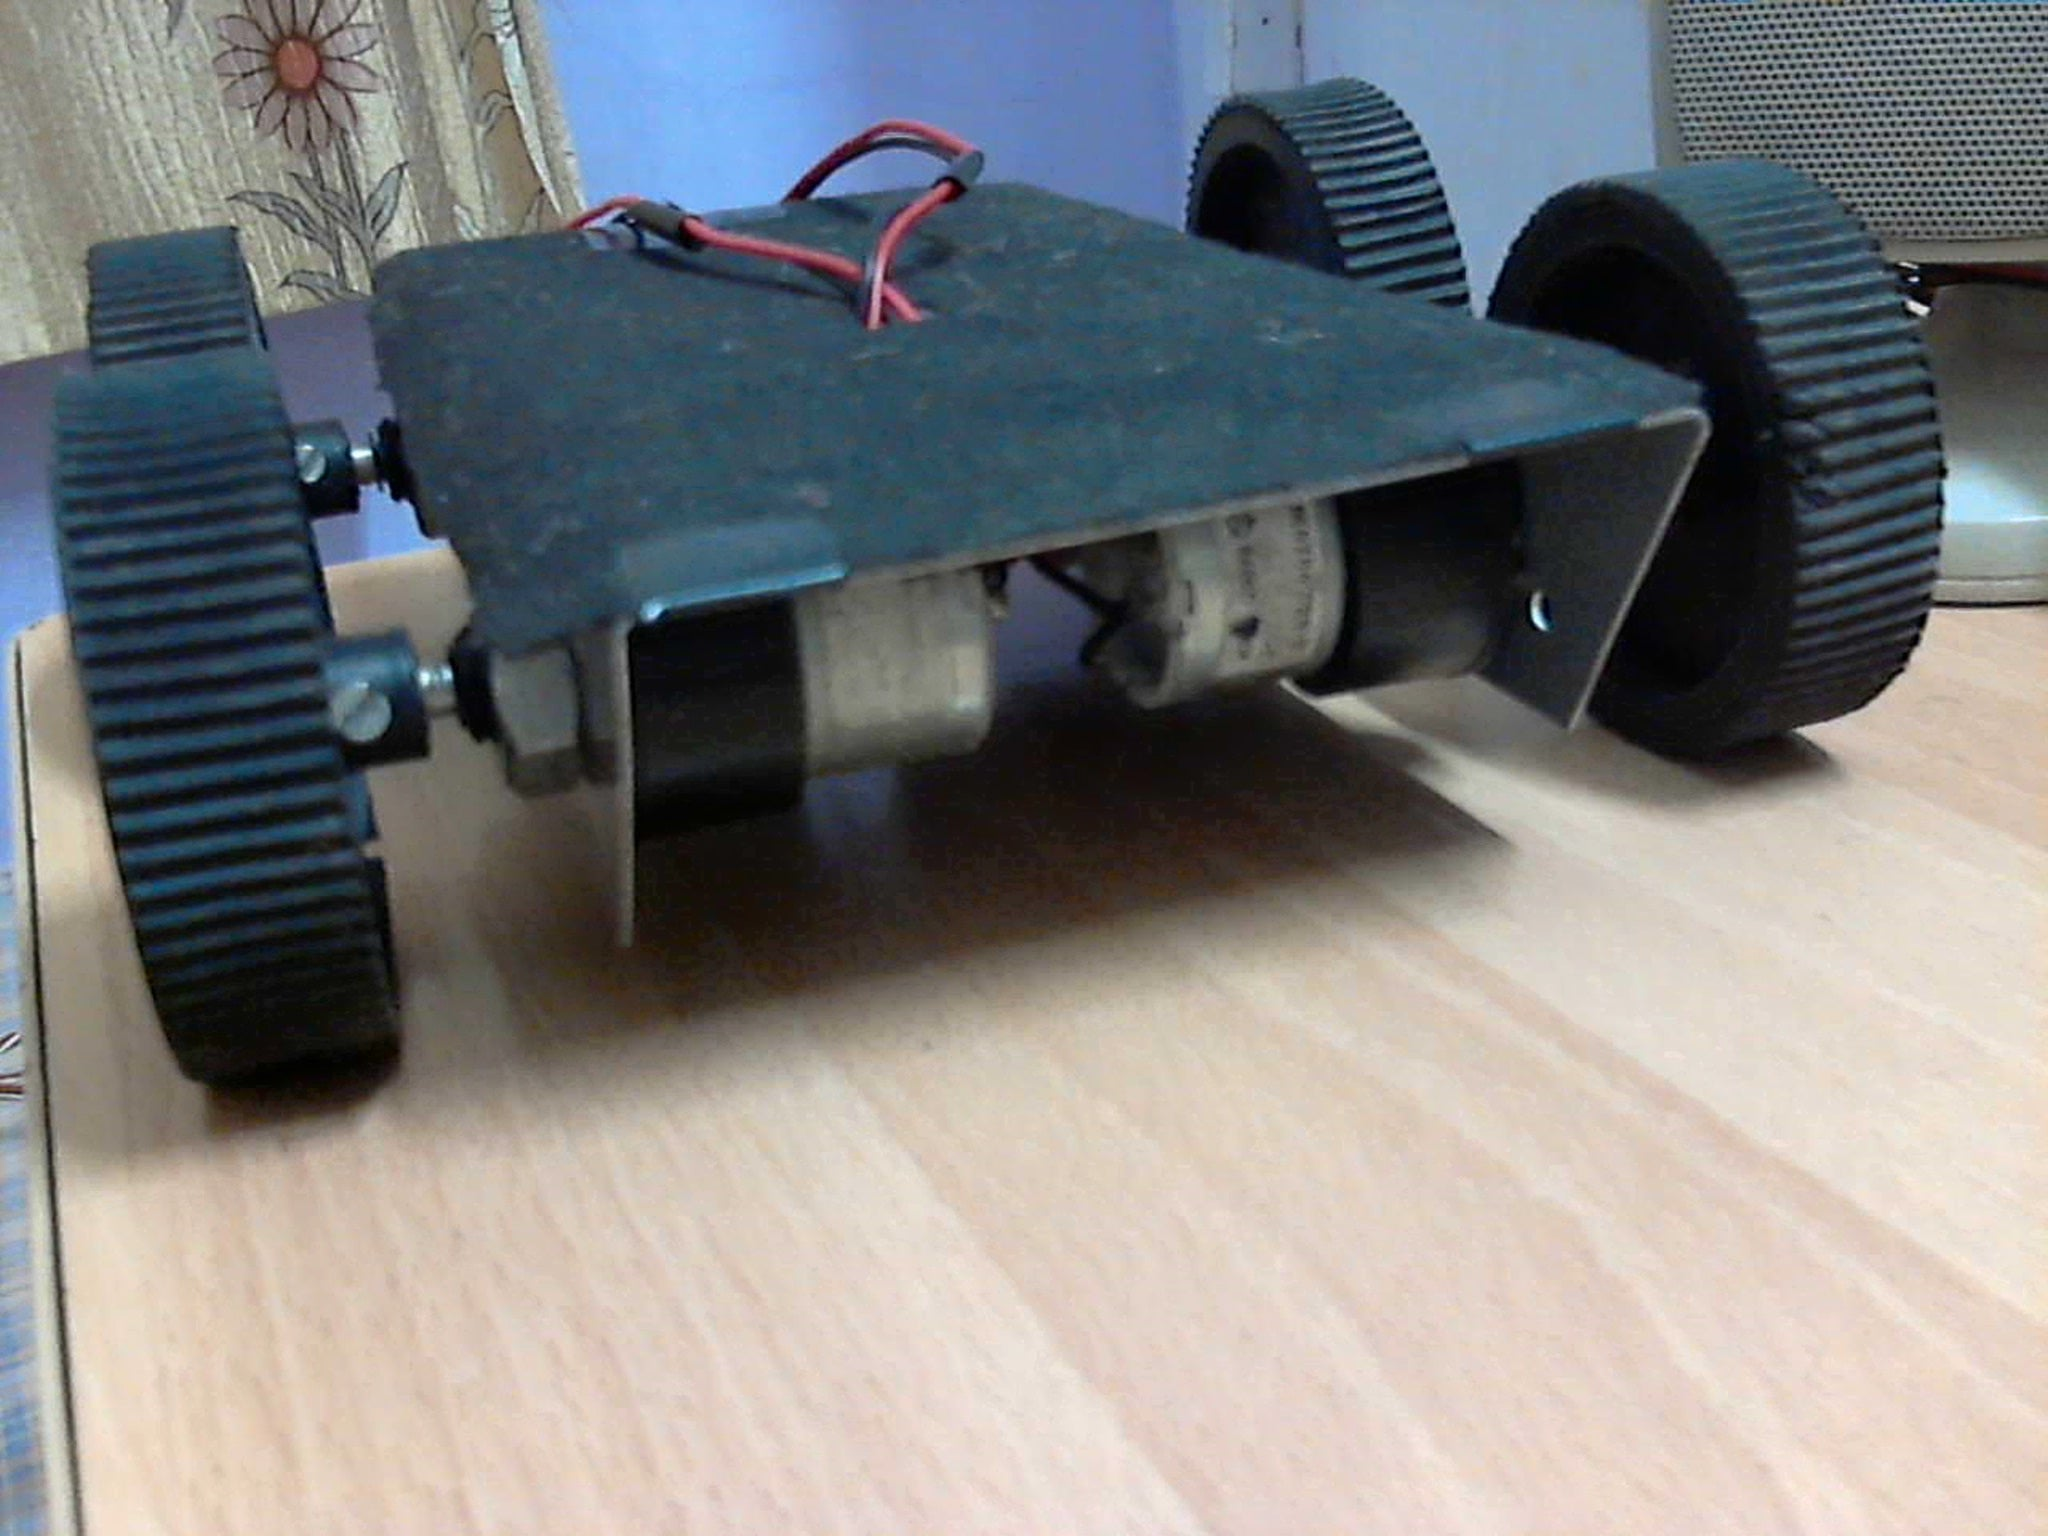 Wired Control Robot Manual 9 Steps With Pictures Reversing Motor Wiring Diagram For Dpdt Switch Engine